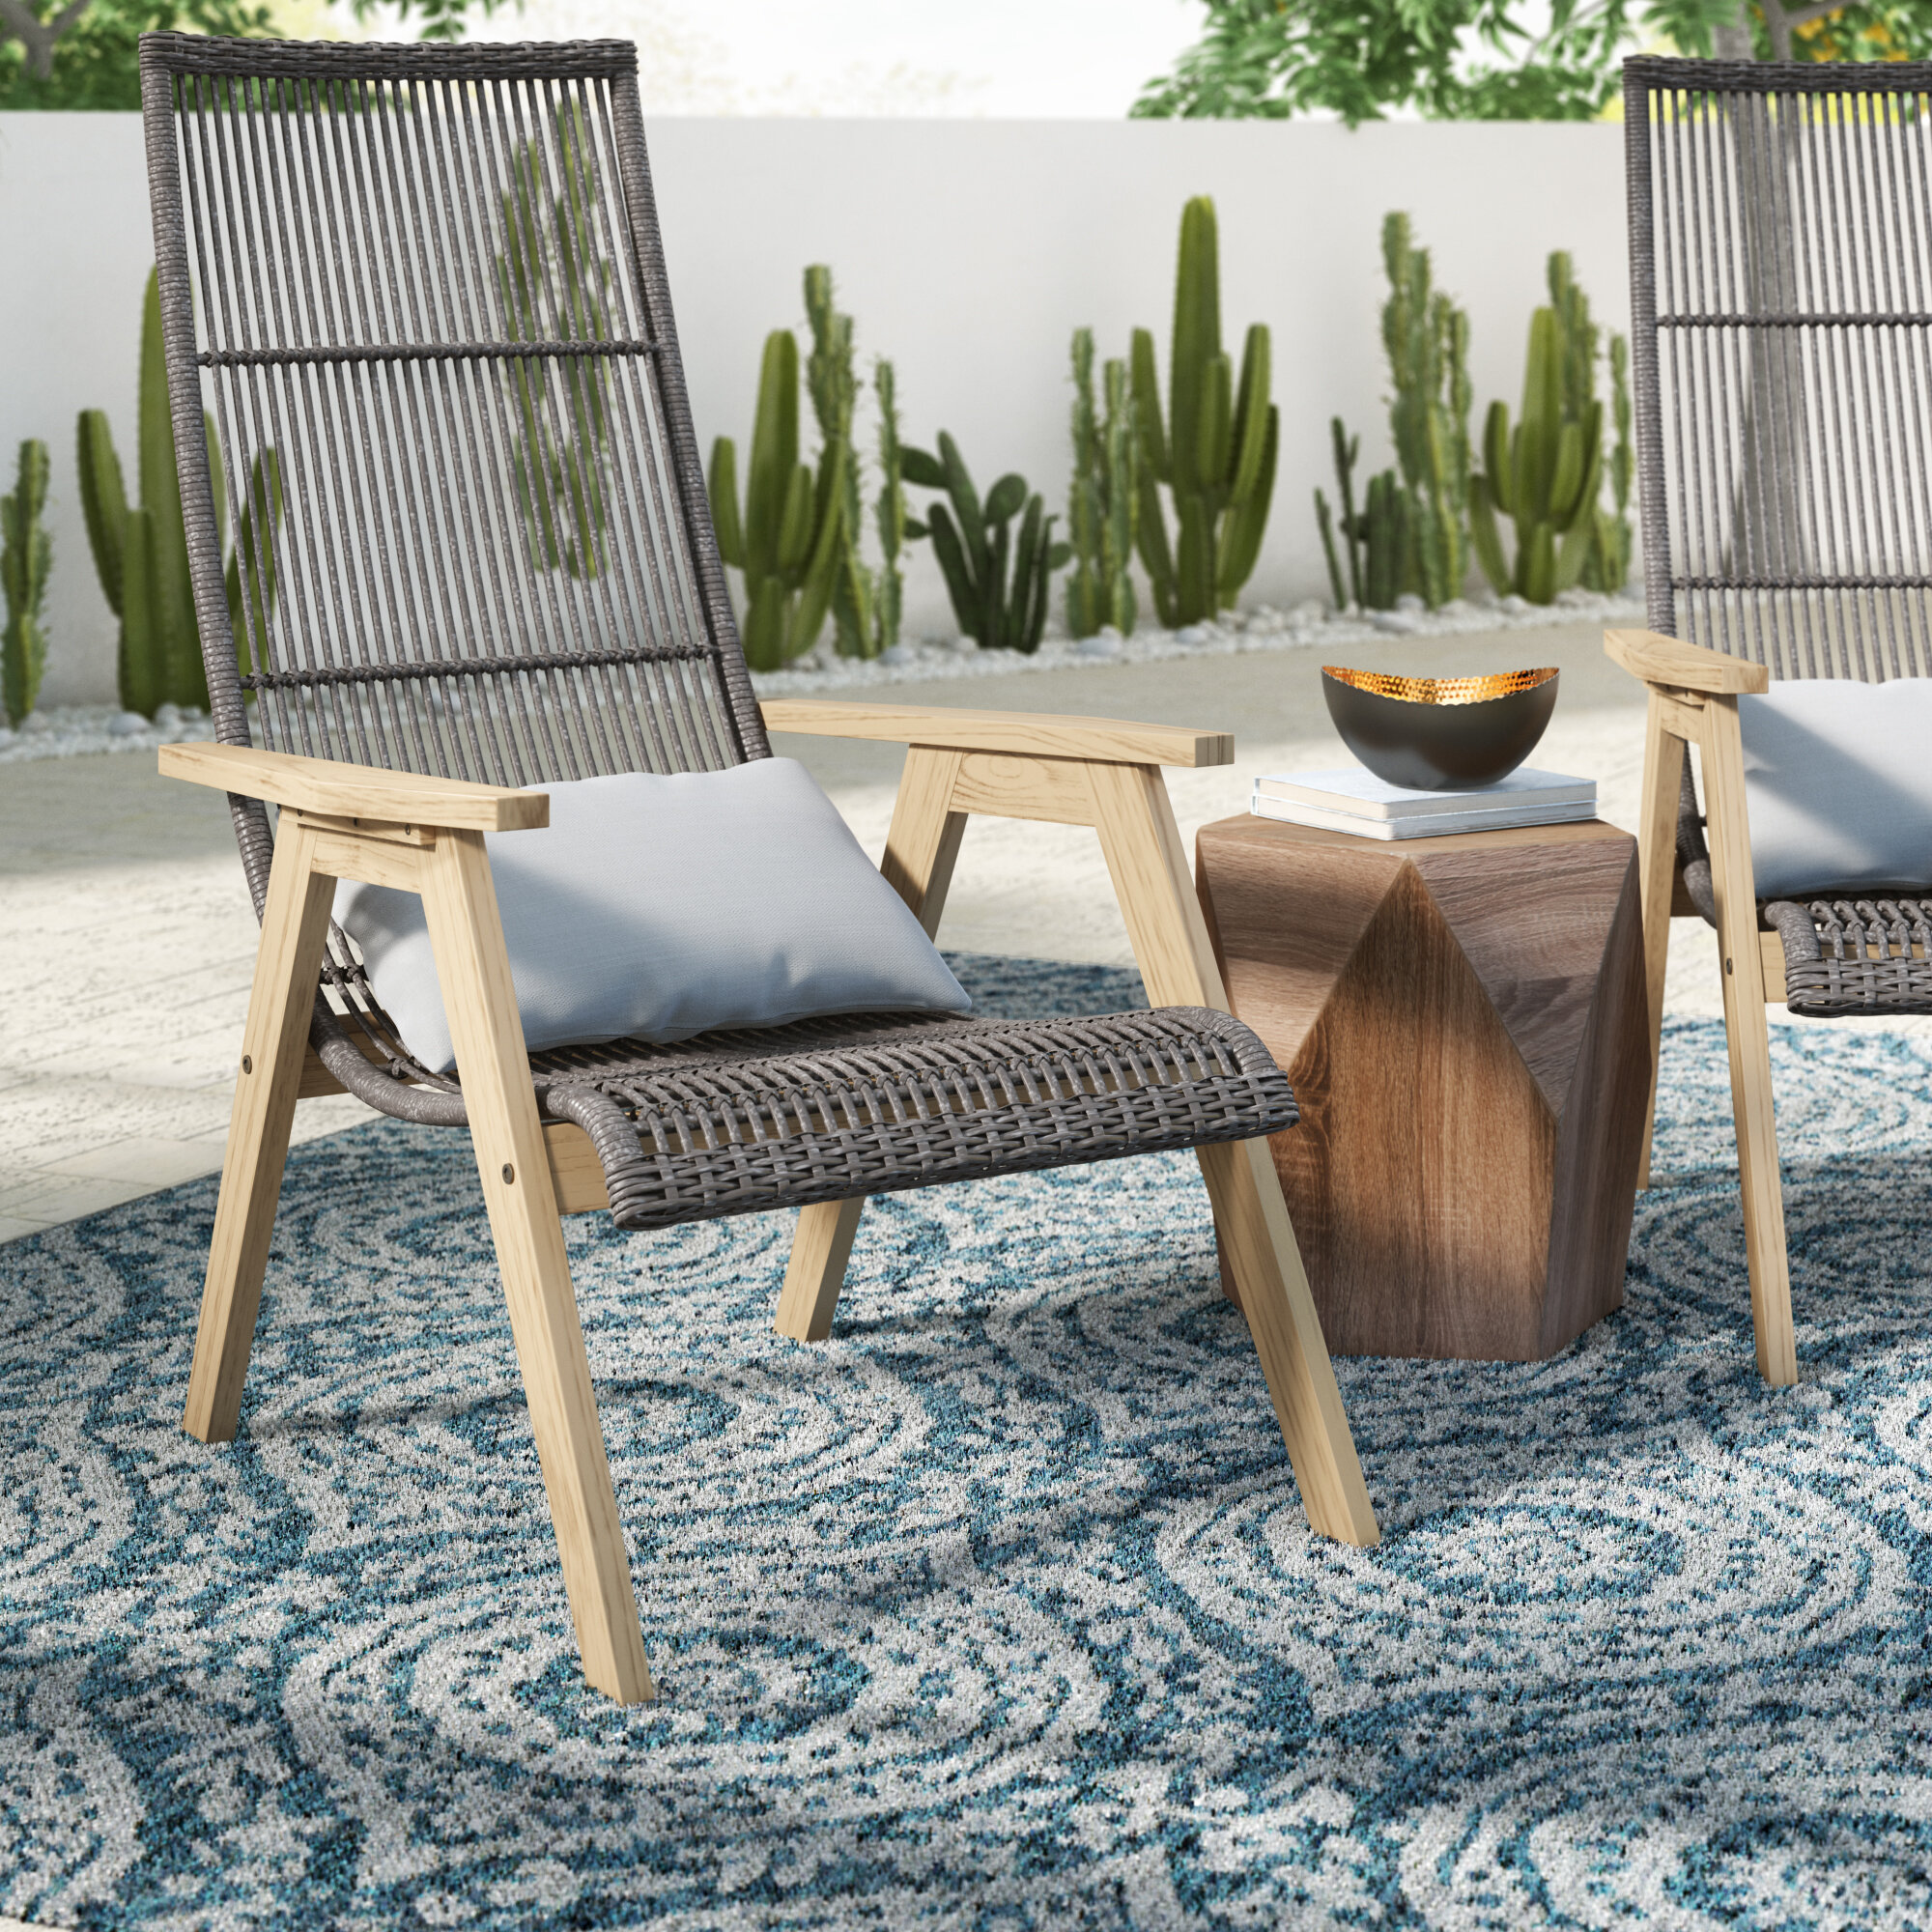 Allstate Patio Furniture.Largent Teak Patio Chair With Cushions